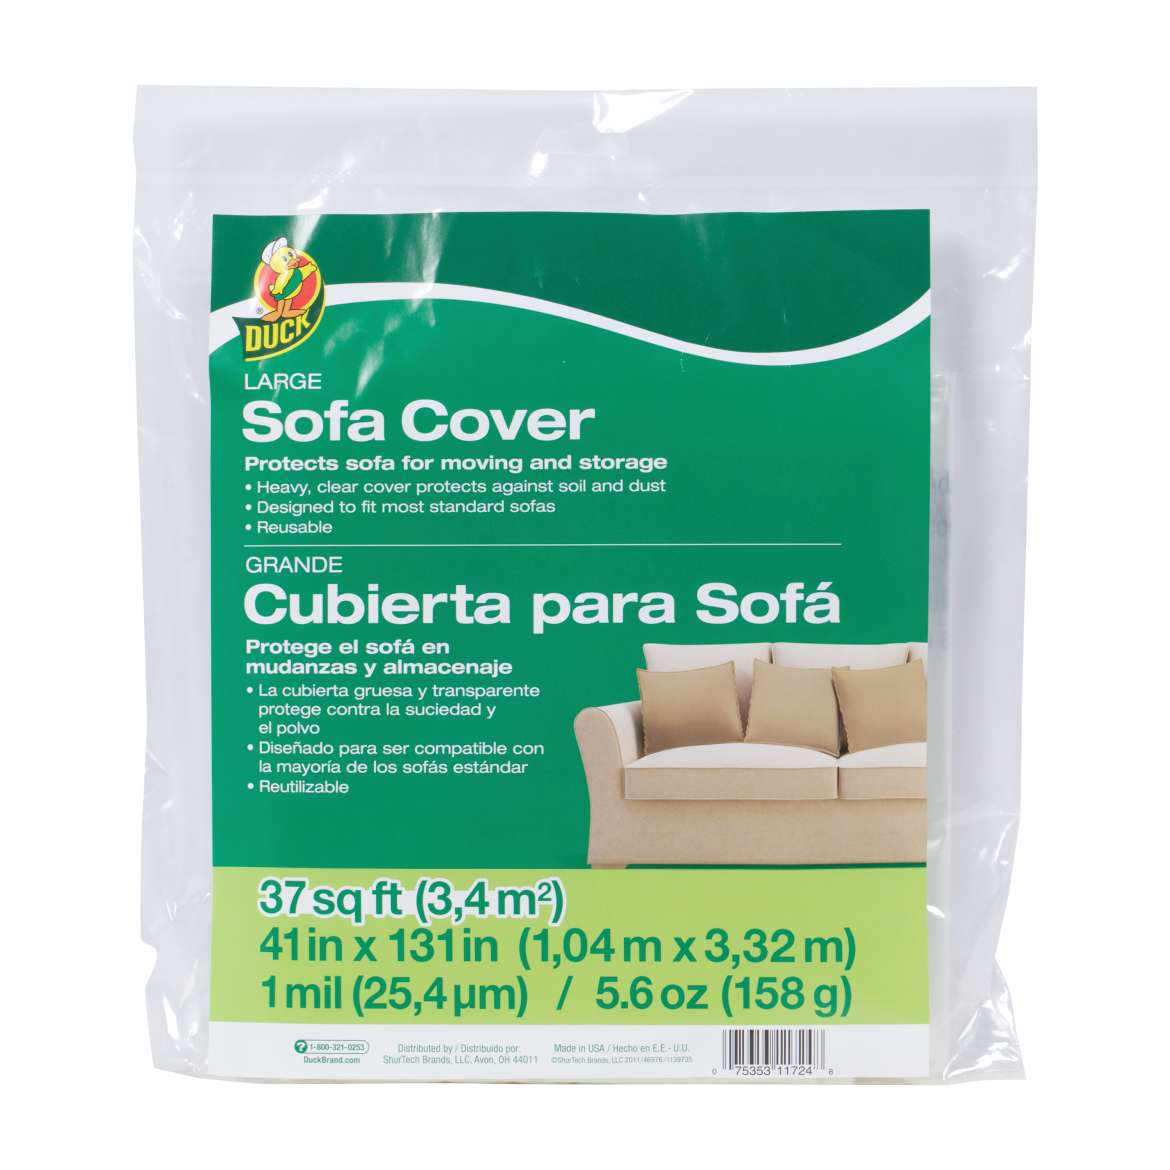 Large Sofa Cover Image